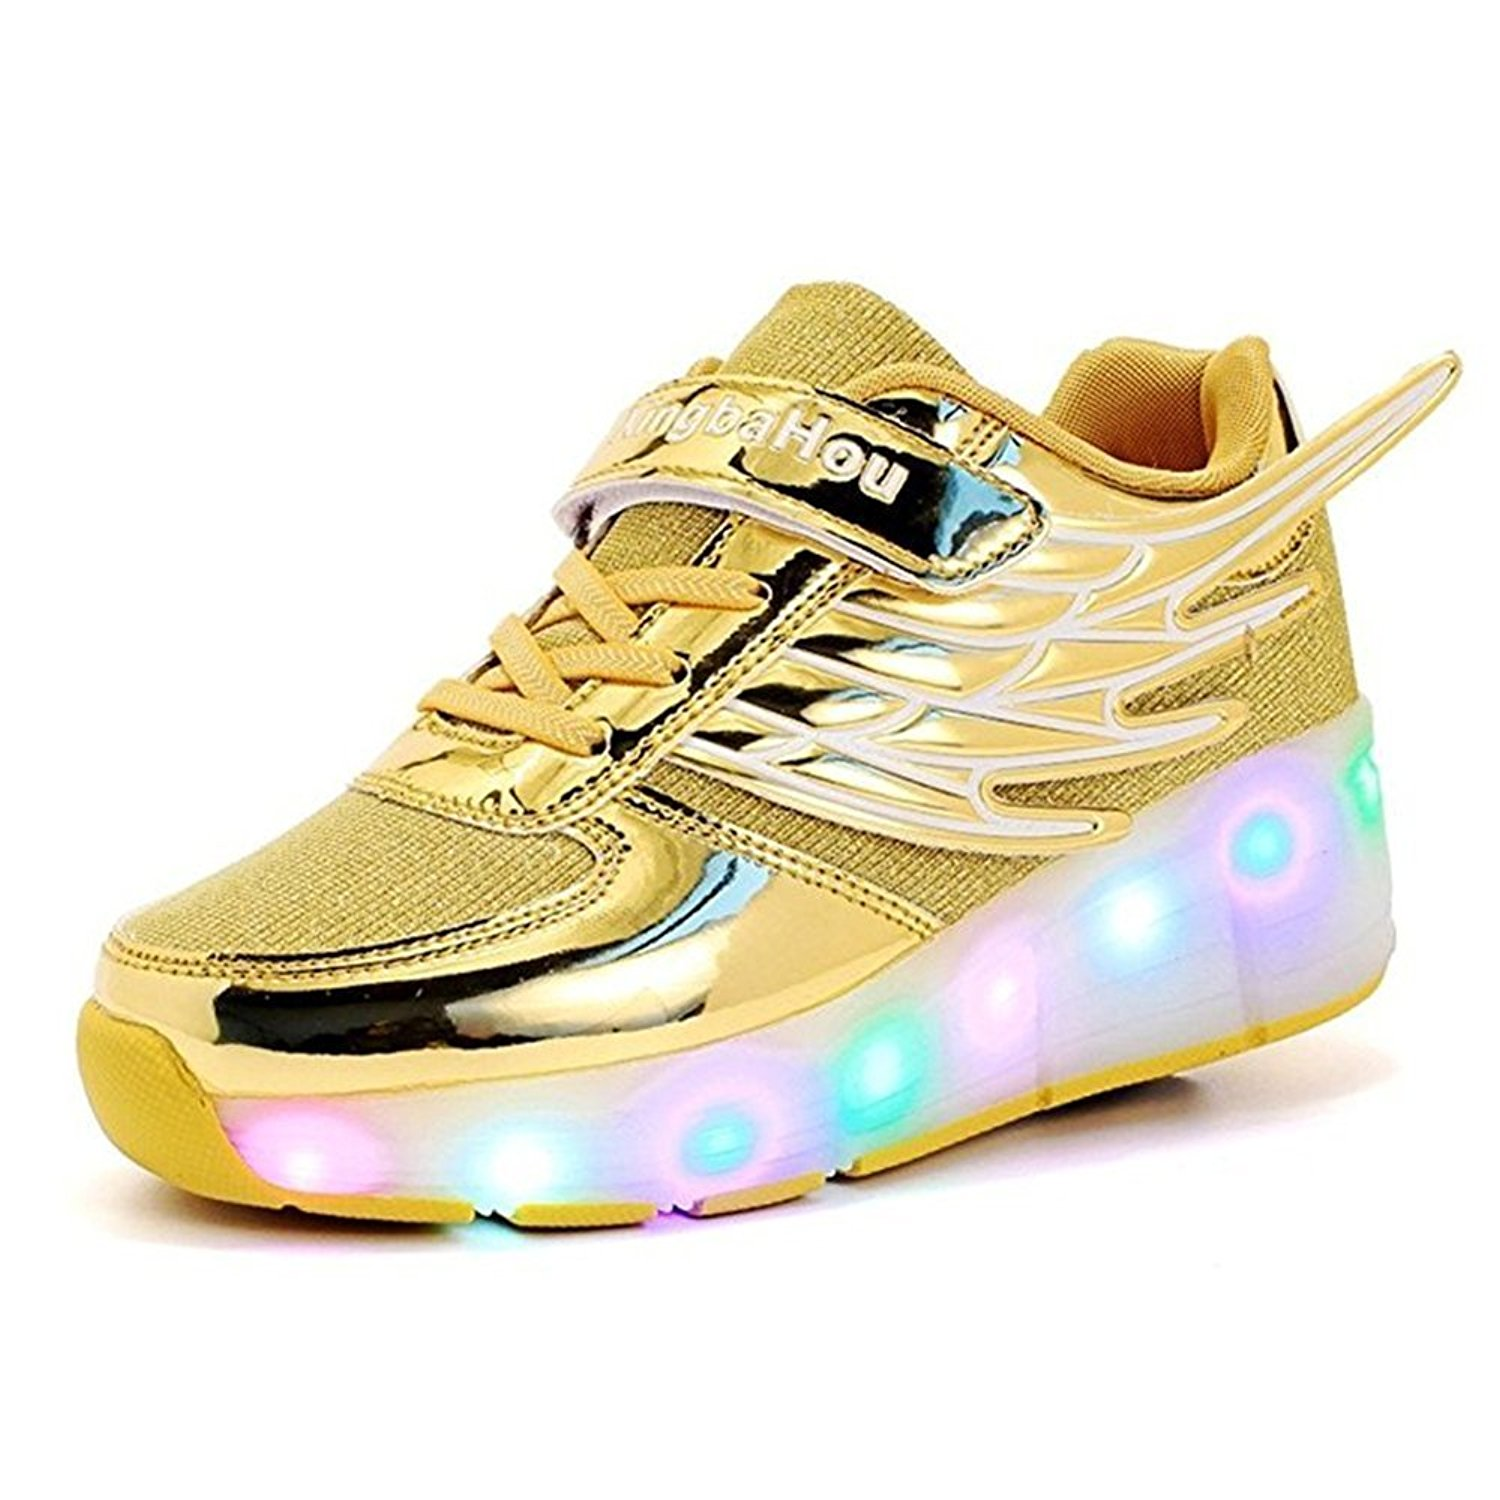 Kid Wings LED Light Up Roller Wheel Shoes Athletic Sneaker Sport Shoes Dance Boot Boy Girl ?Gold 4 M US Big Kid?